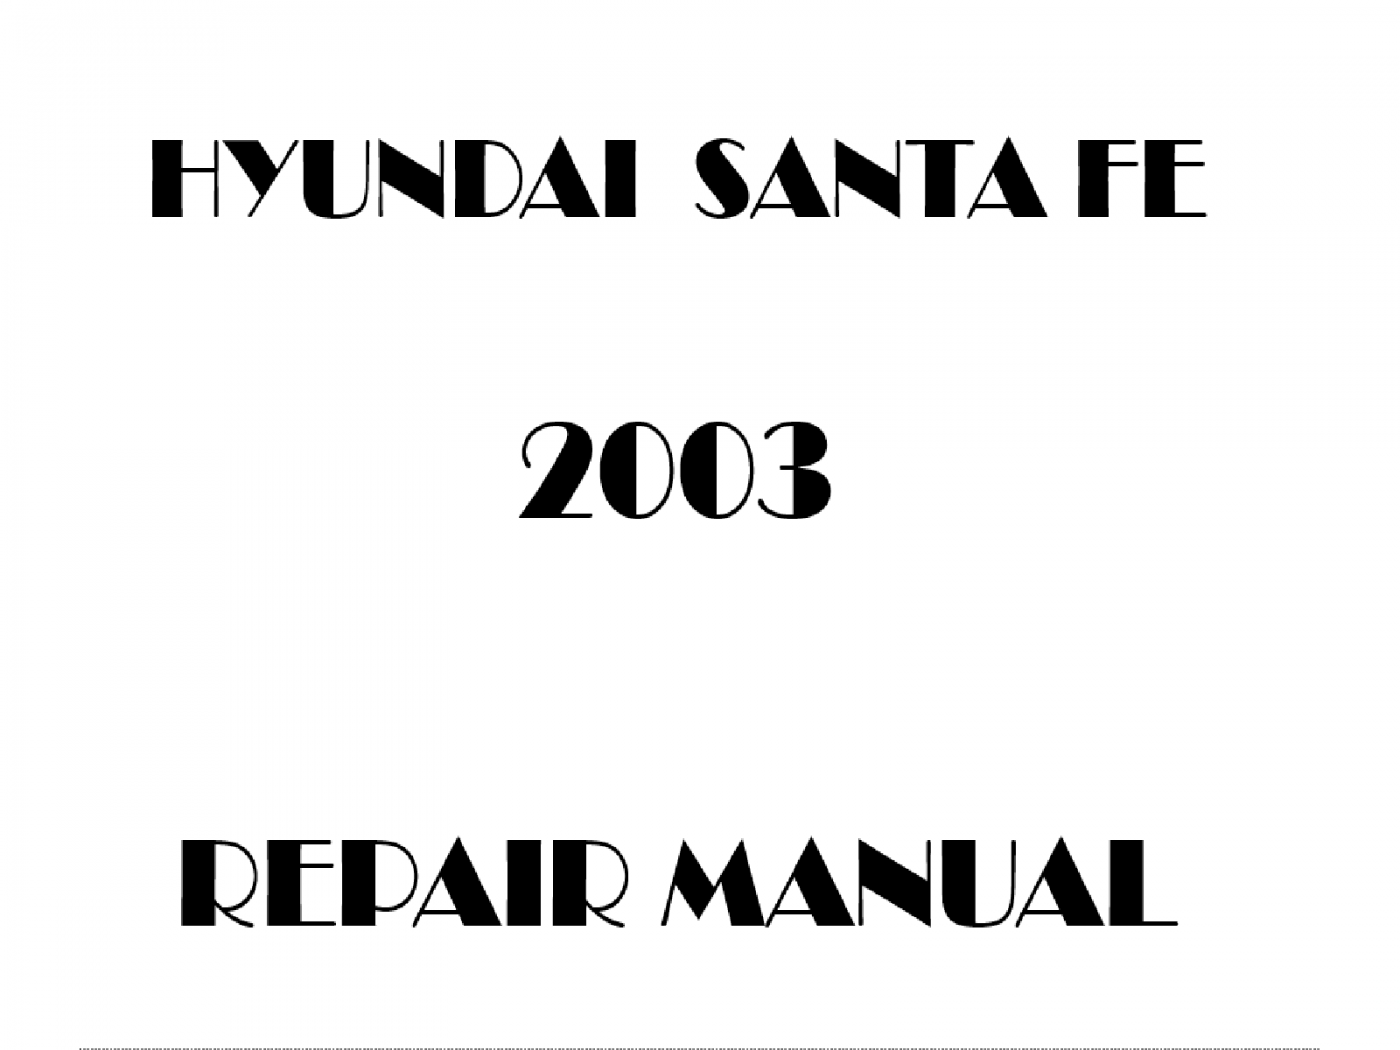 2003 Hyundai Santa Fe repair manual